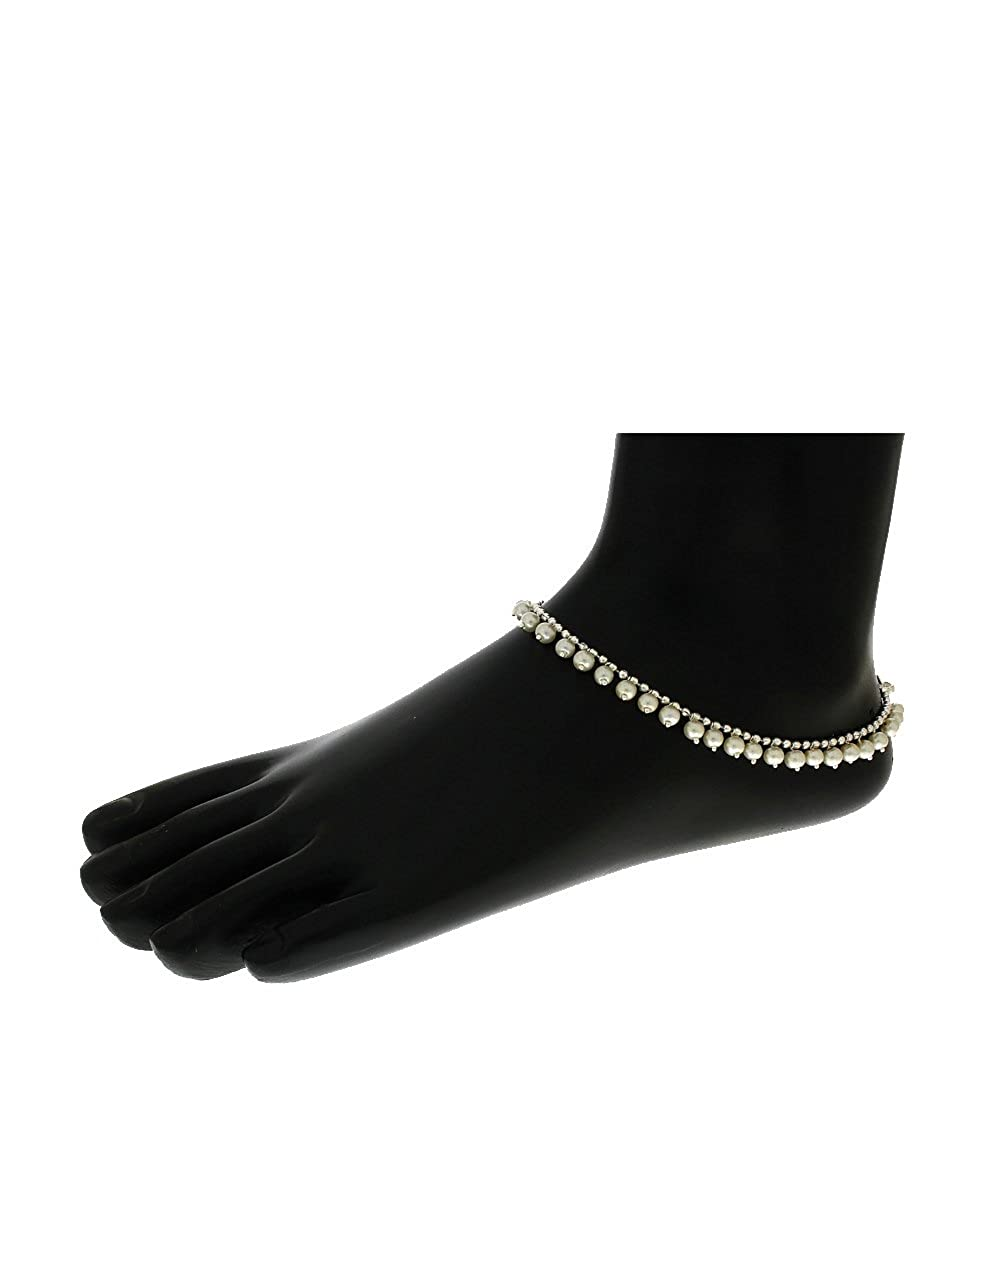 Anuradha Art Silver Colour Styled with Pearls Beads Designer Anklets//Payal for Women//Girls